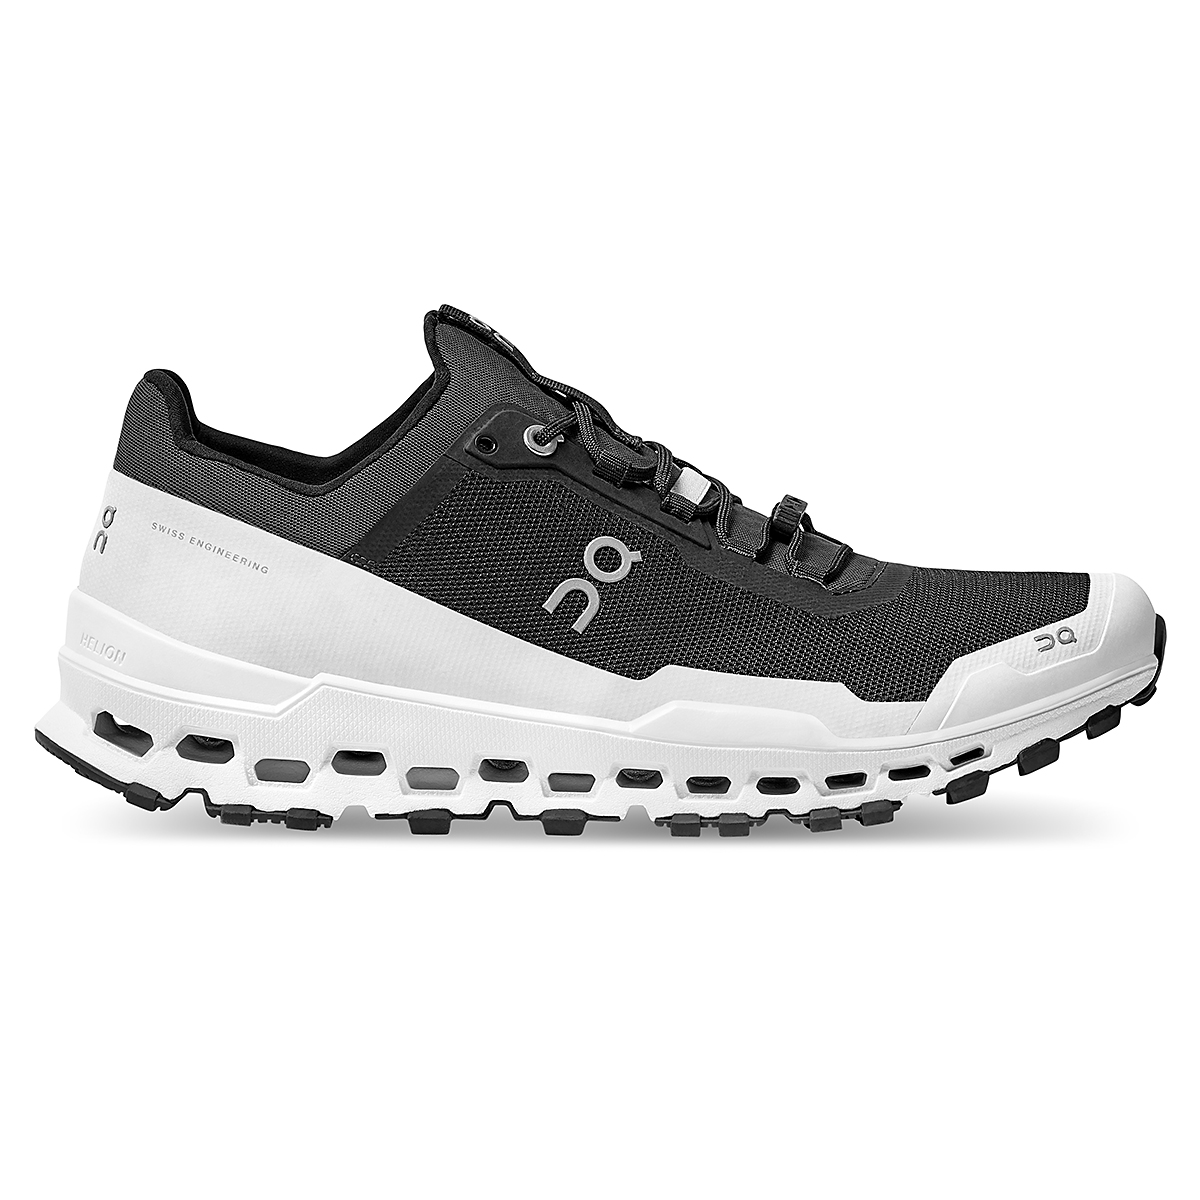 Men's On Cloudultra Trail-Running Shoes - Color: Black/White - Size: 7 - Width: Regular, Black/White, large, image 1